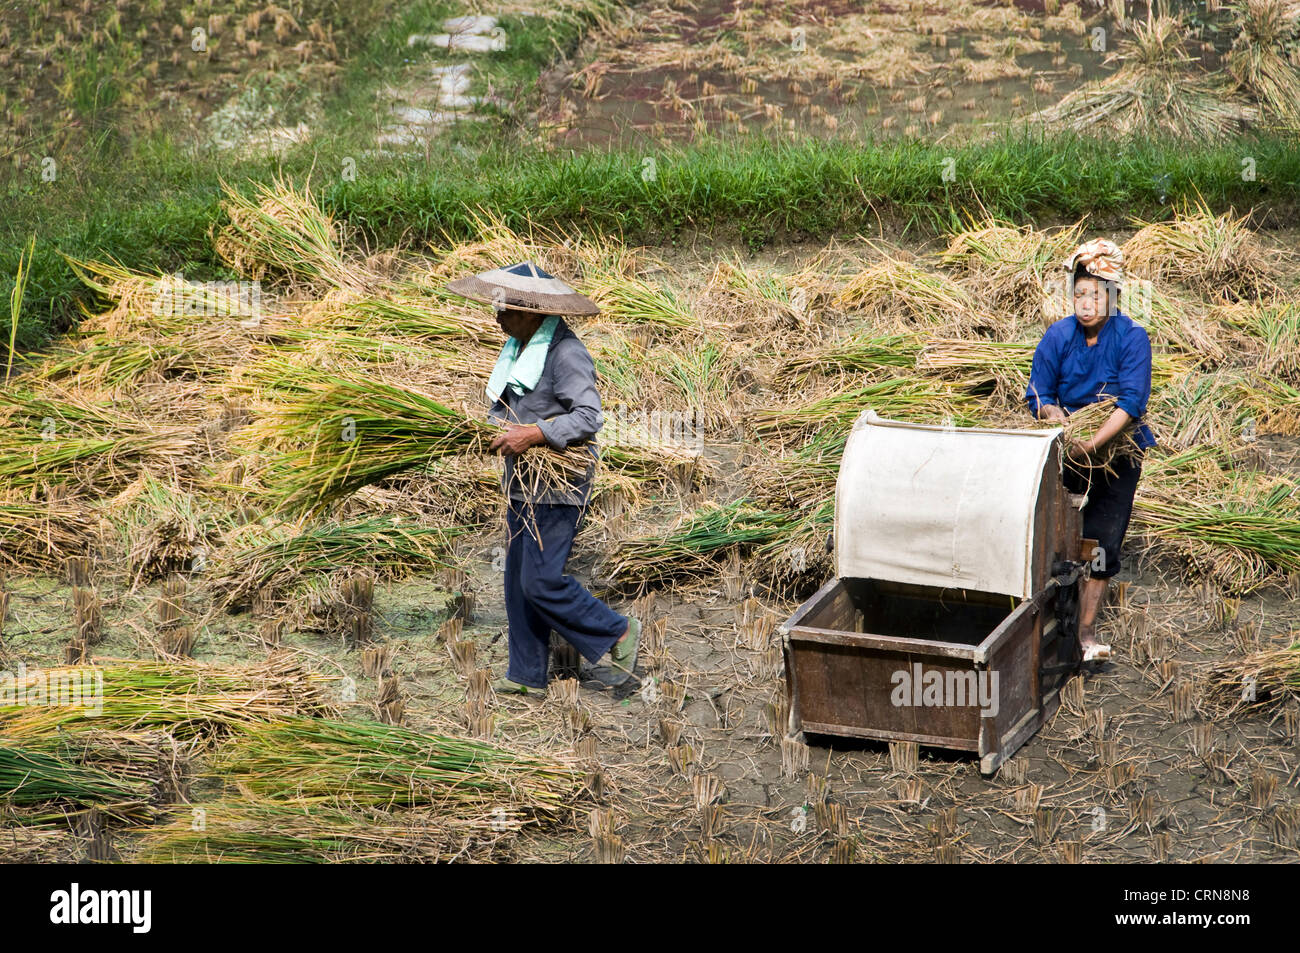 Chinesische Küche In Der Nähe Chinese Peasants Stockfotos And Chinese Peasants Bilder Alamy